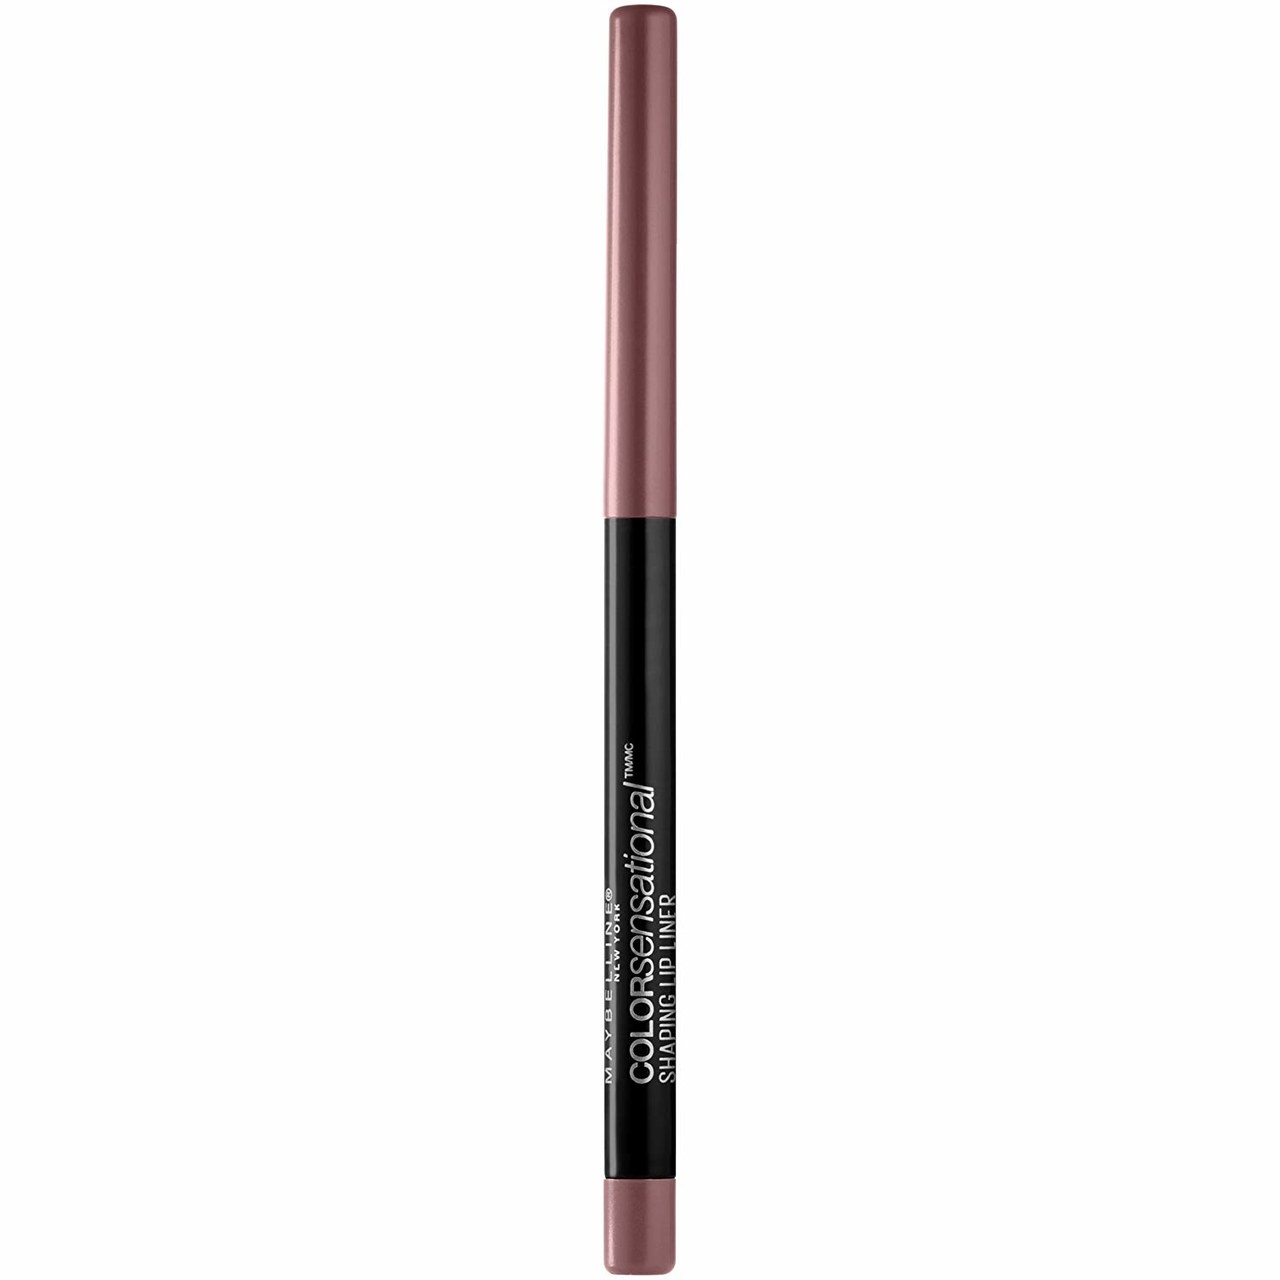 Maybelline Color Sensational Shaping Lip Liner in Purely Nude